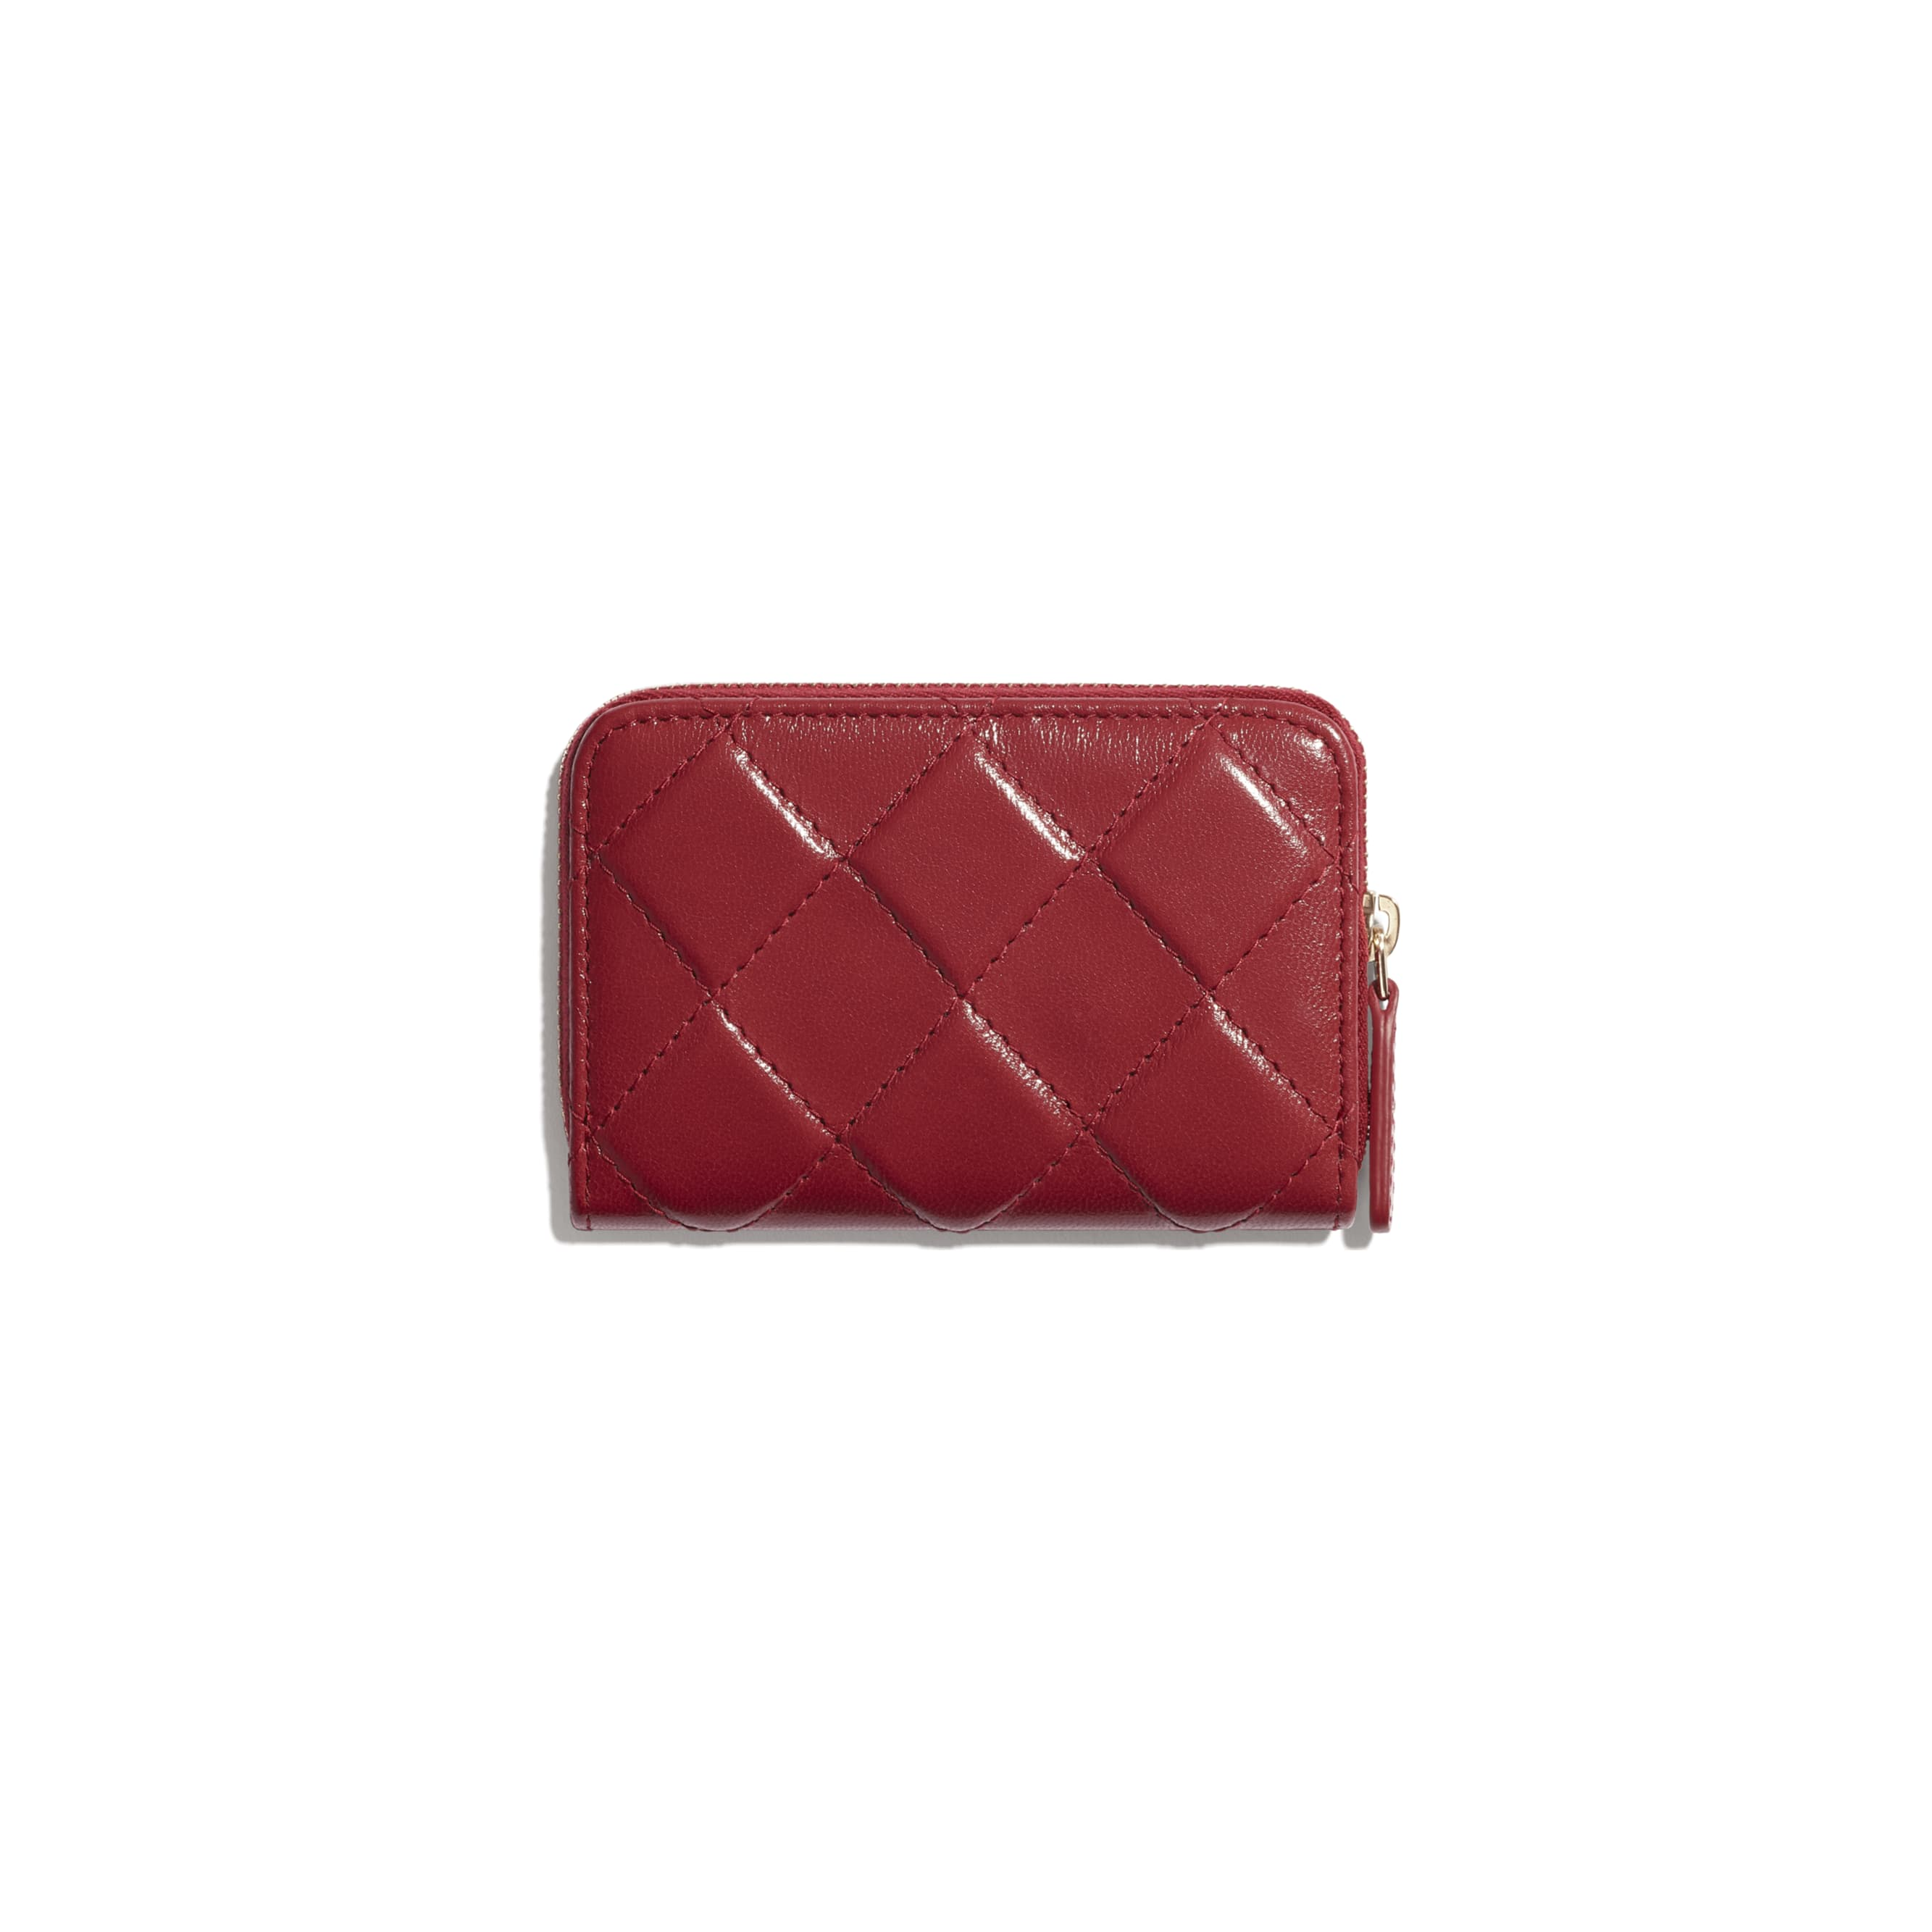 Zipped Coin Purse - Red - Shiny Crumpled Goatskin & Gold-Tone Metal - CHANEL - Alternative view - see standard sized version